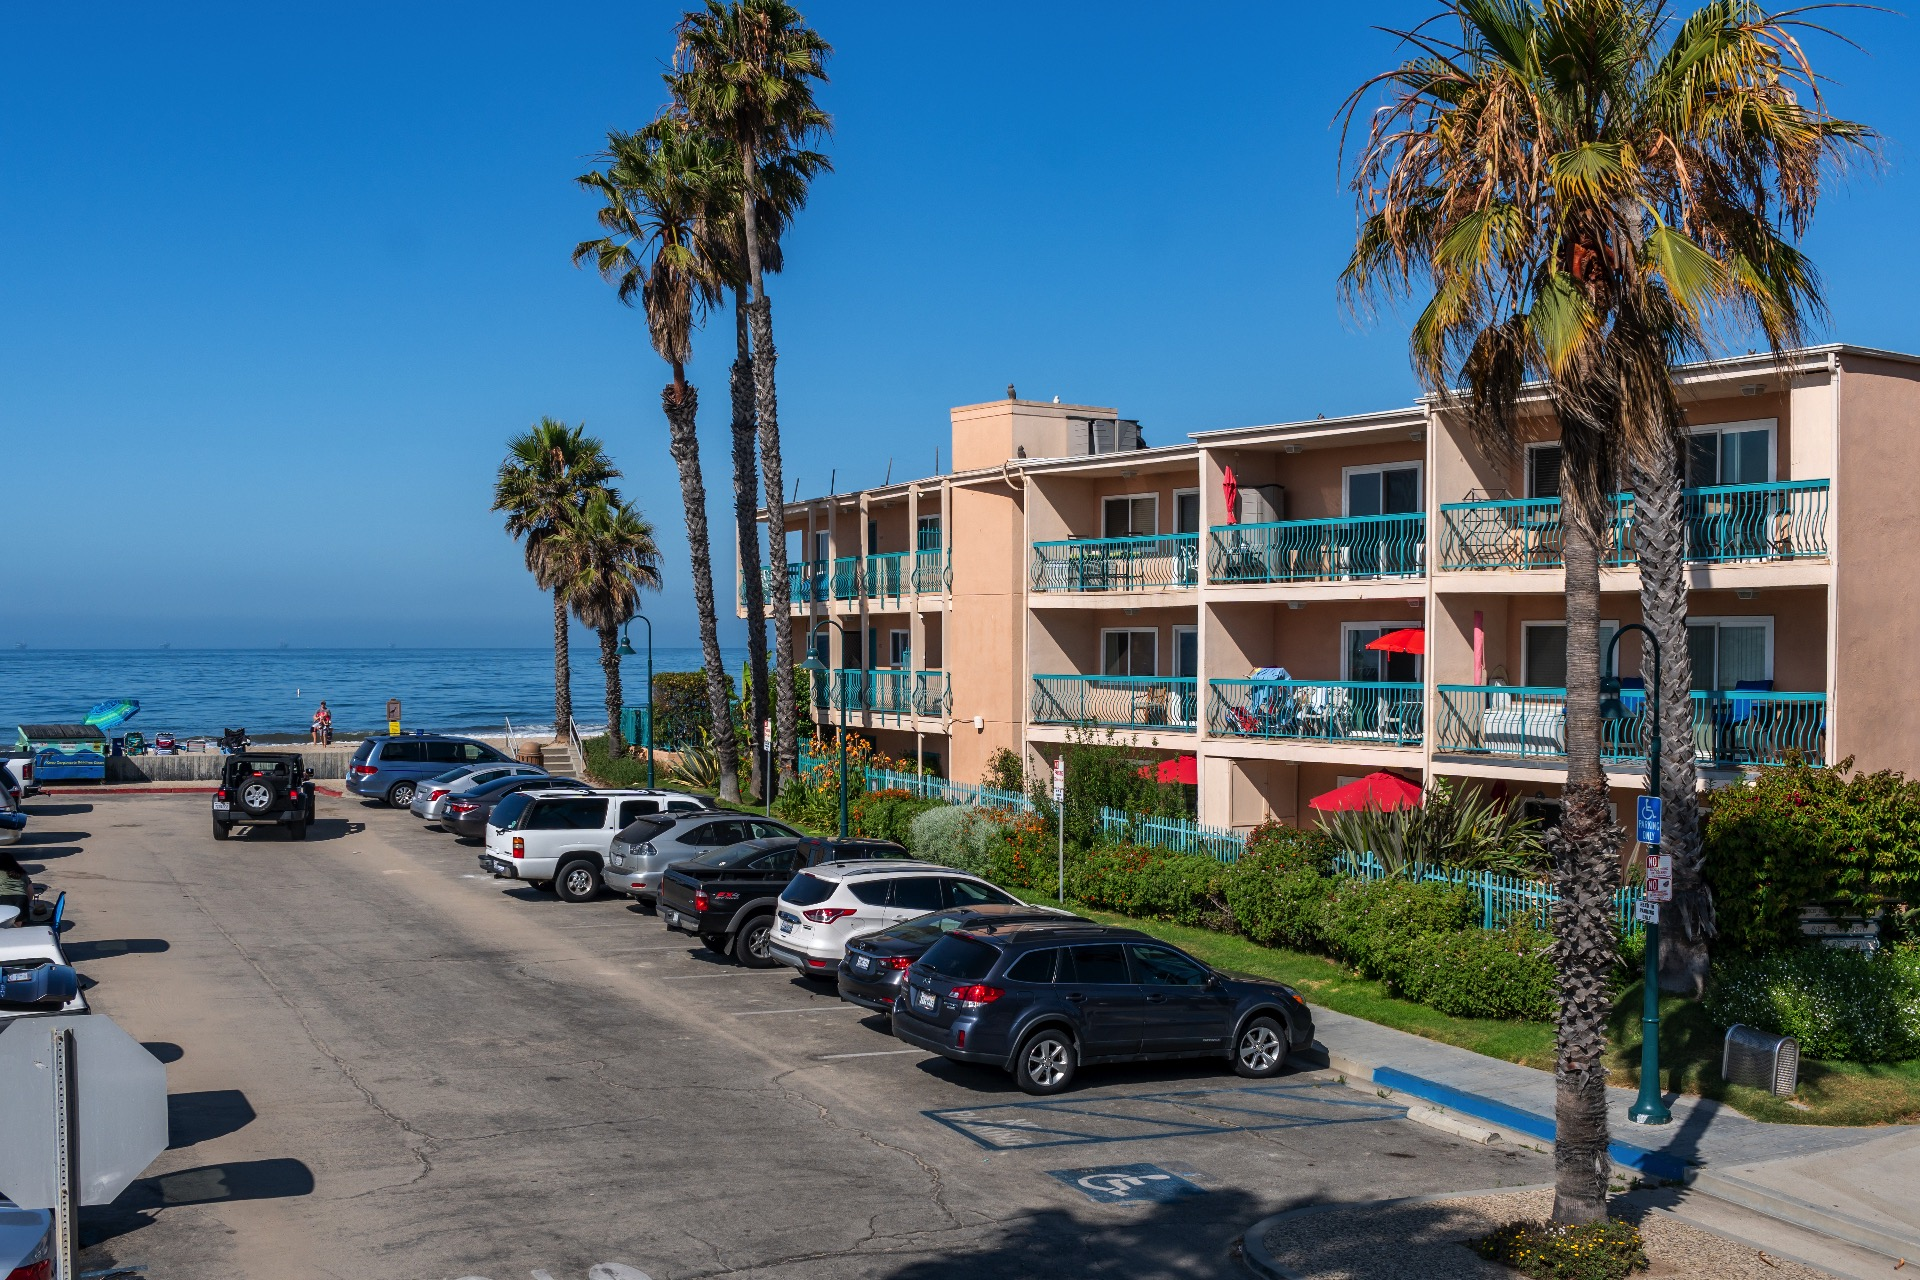 View of the Carpinteria Shores resort from the road